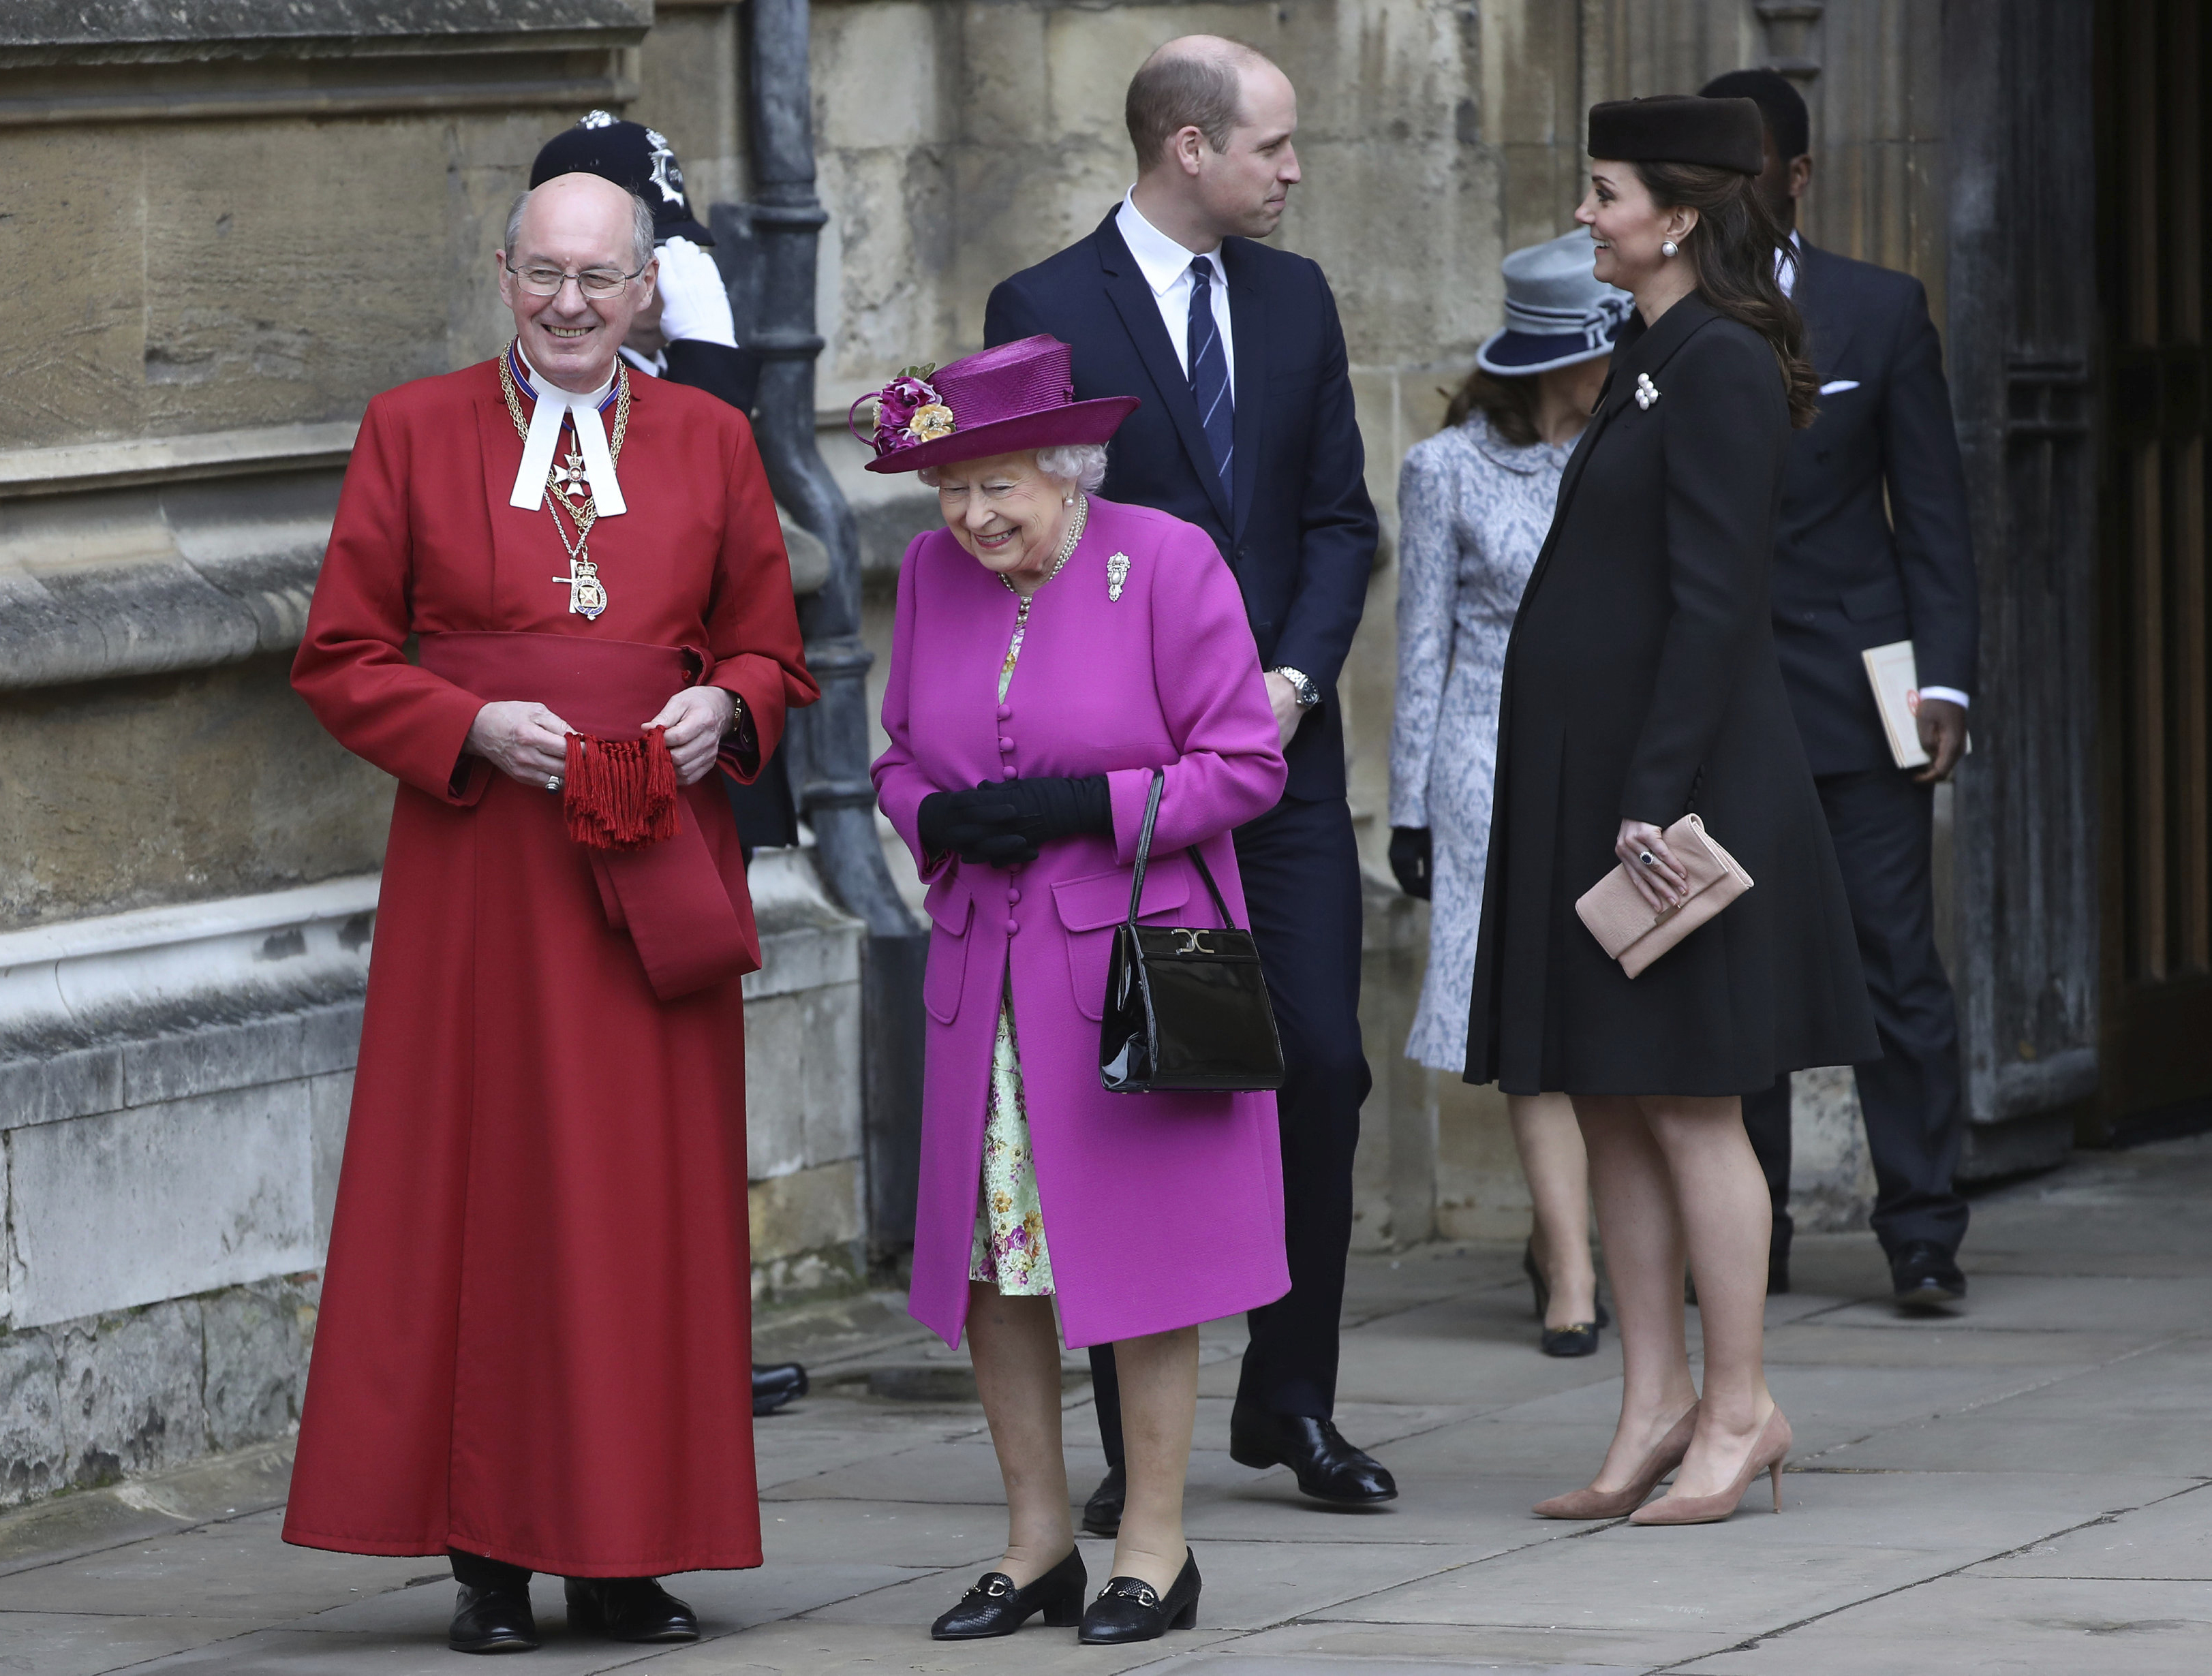 <div class='meta'><div class='origin-logo' data-origin='none'></div><span class='caption-text' data-credit='Simon Dawson/pool via AP'>Queen Elizabeth II, with Prince William and Kate, Duchess of Cambridge, leave the annual Easter Sunday service at St George's Chapel at Windsor Castle in Windsor on April 1, 2018.</span></div>